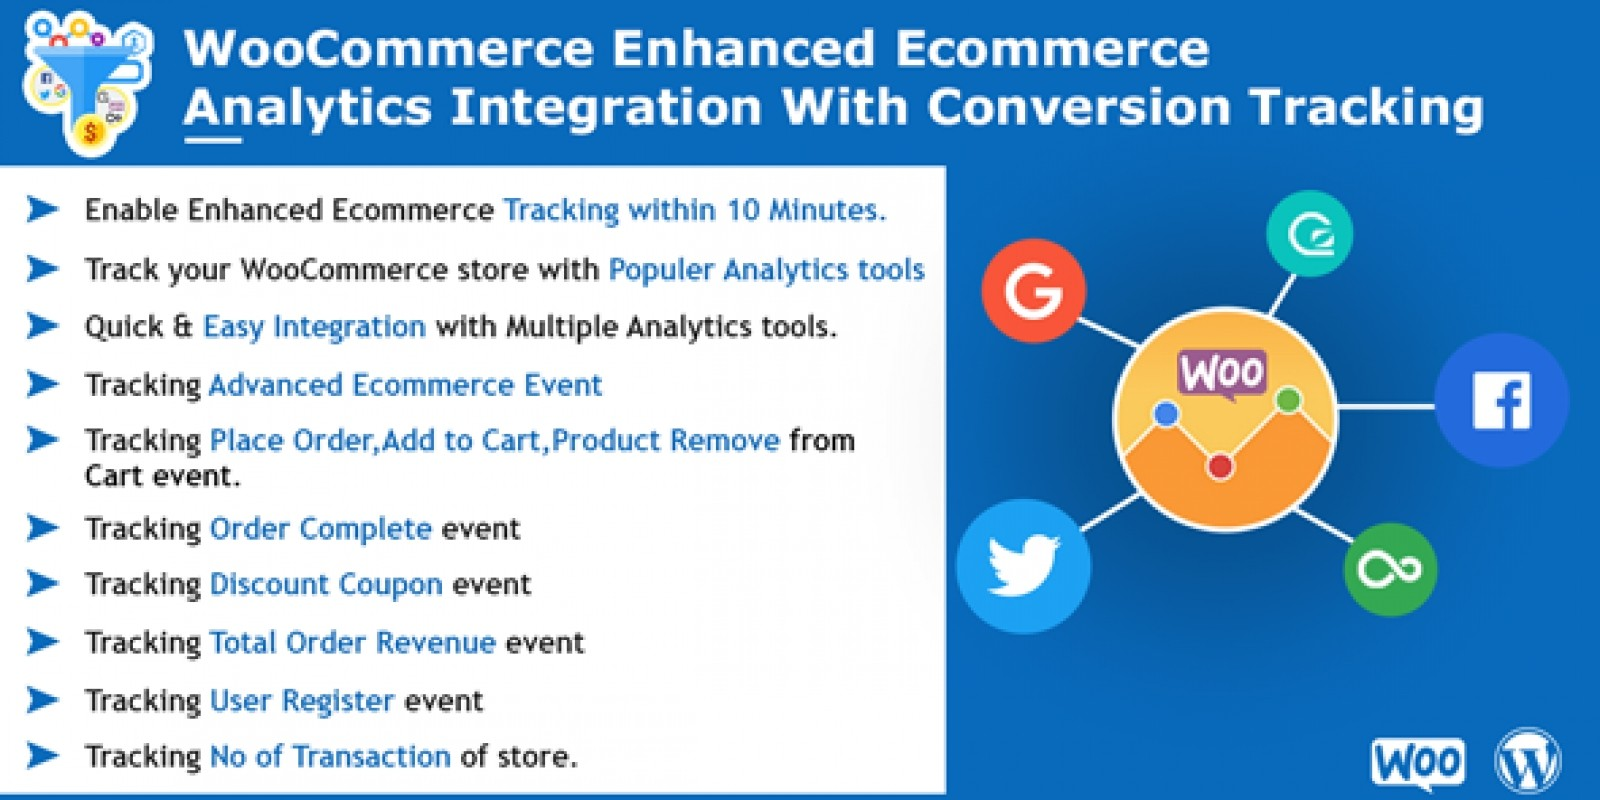 WooCommerce Enhanced Ecommerce Analytics